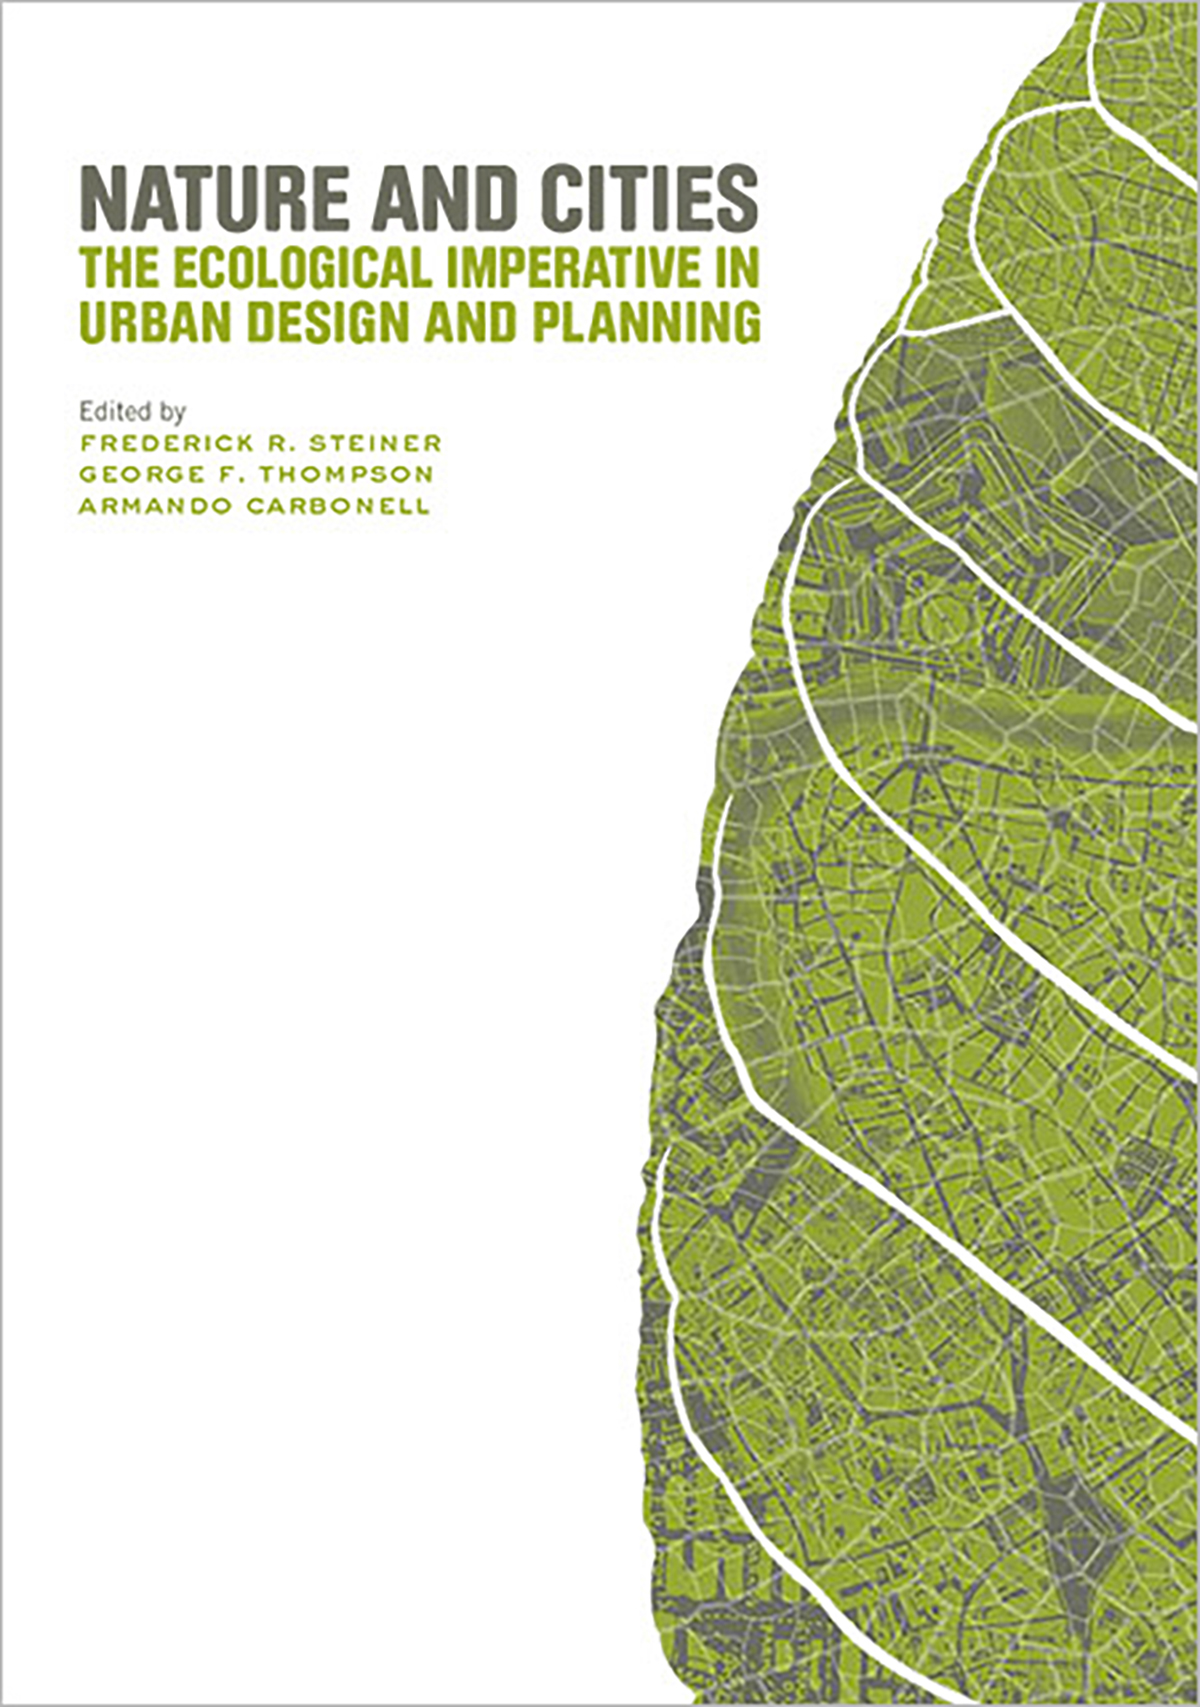 Nature and Cities: The Ecological Imperative in Urban Design & Planning 1